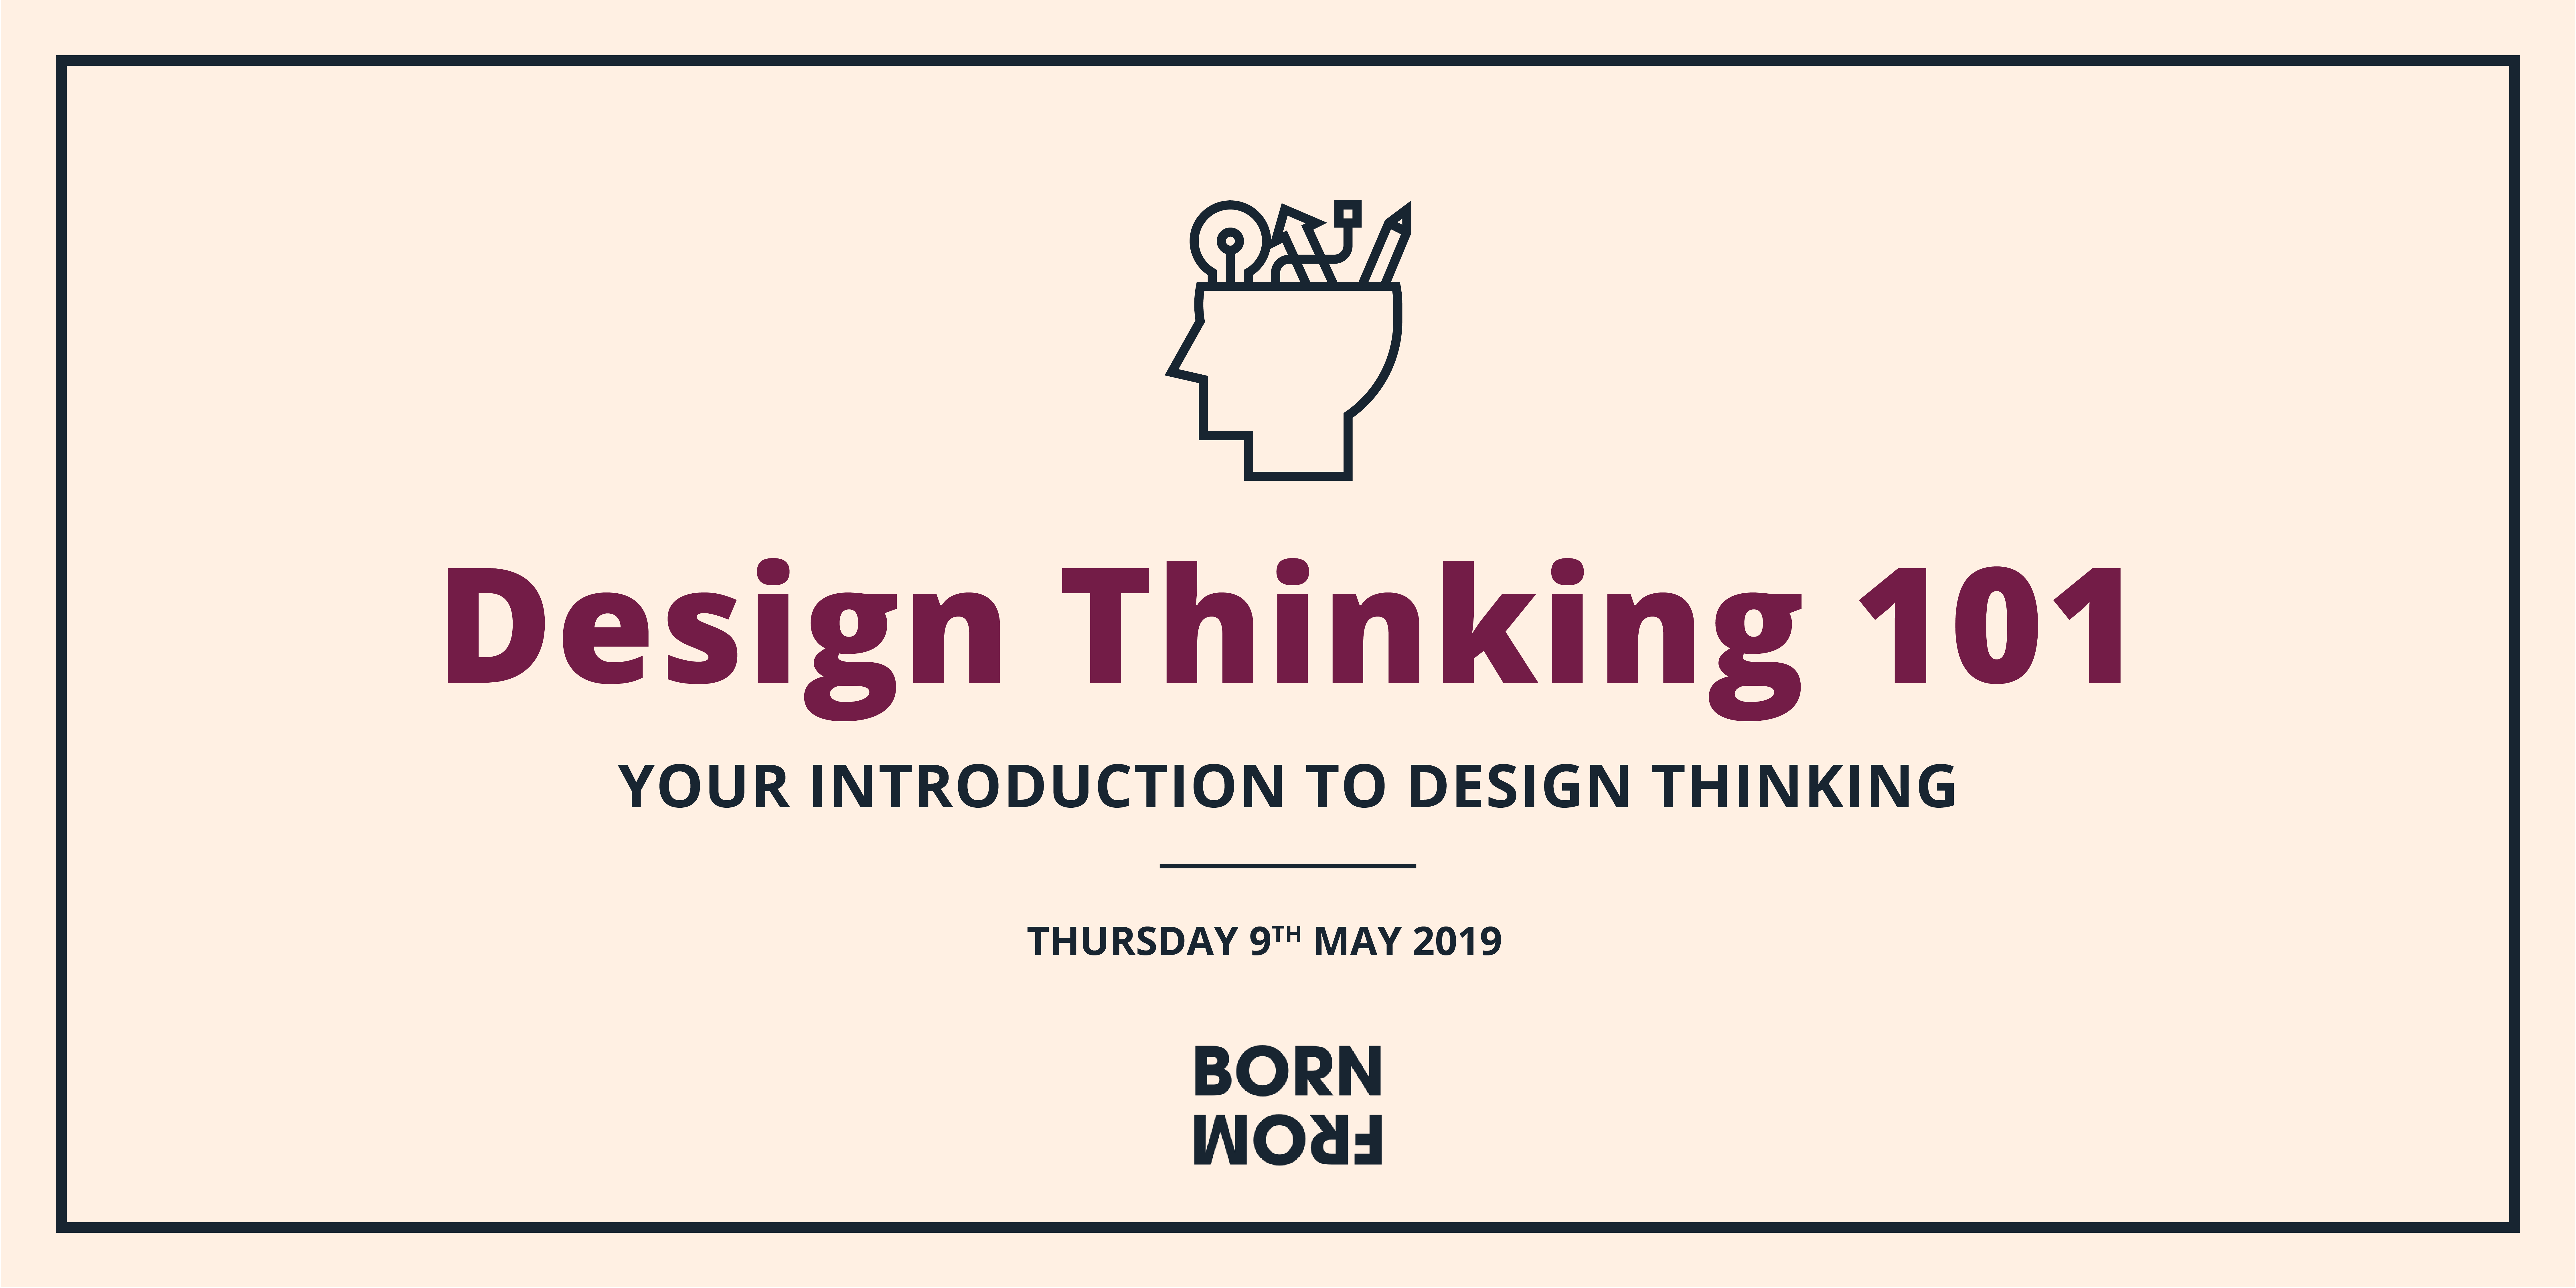 Design Thinking 101 Workshop Cover Image